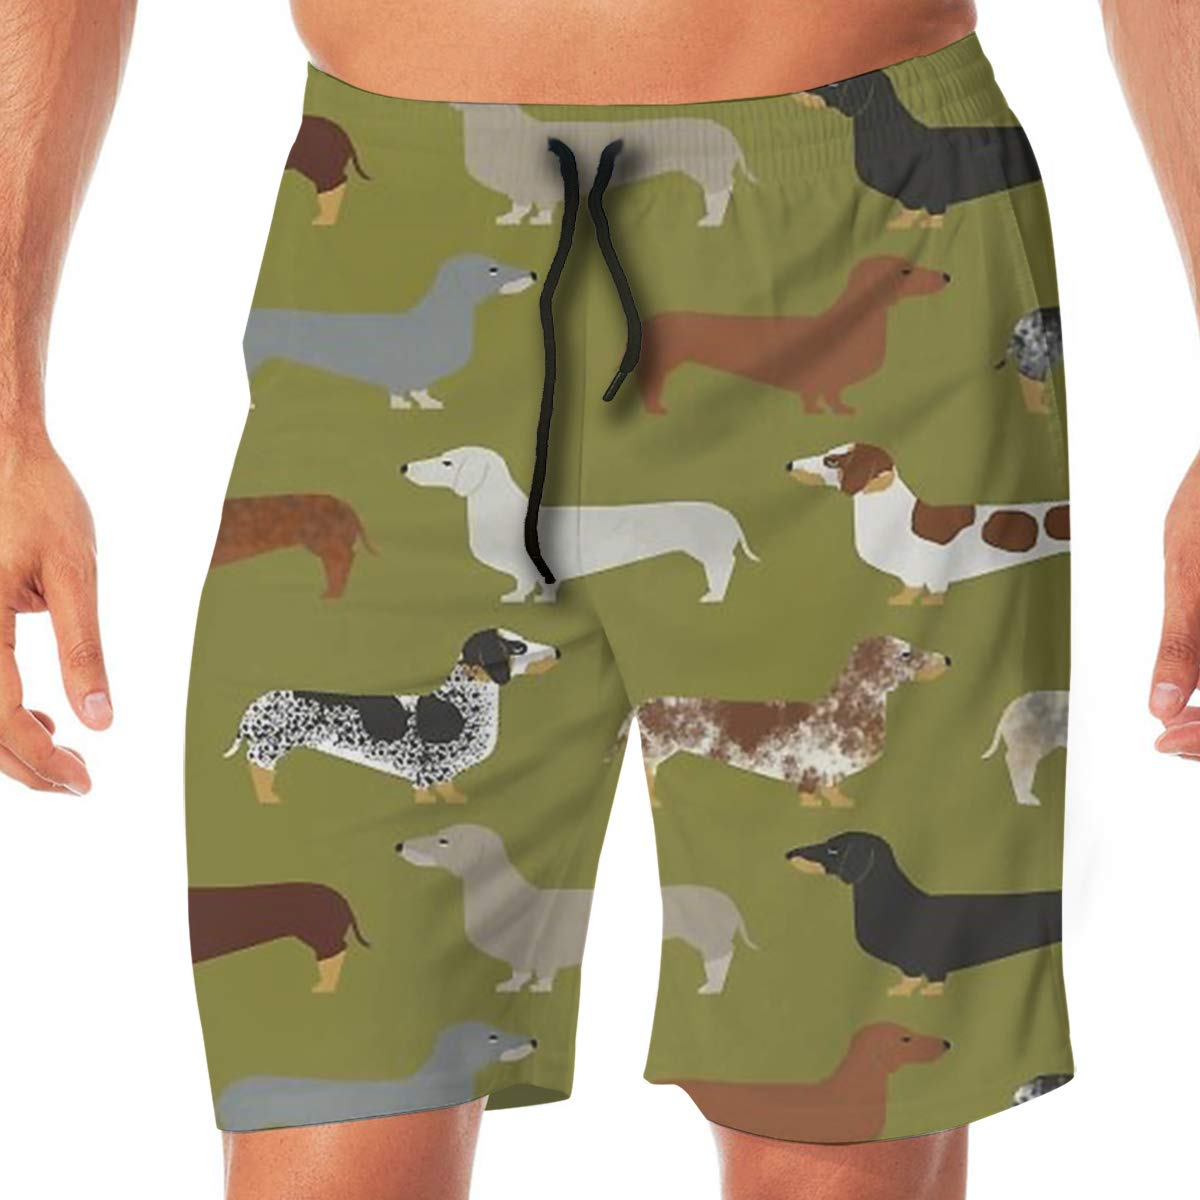 TR2YU7YT Doxie Dachshund Green Dogs Casual Mens Swim Trunks Quick Dry Printed Beach Shorts Summer Boardshorts Bathing Suits with Drawstring